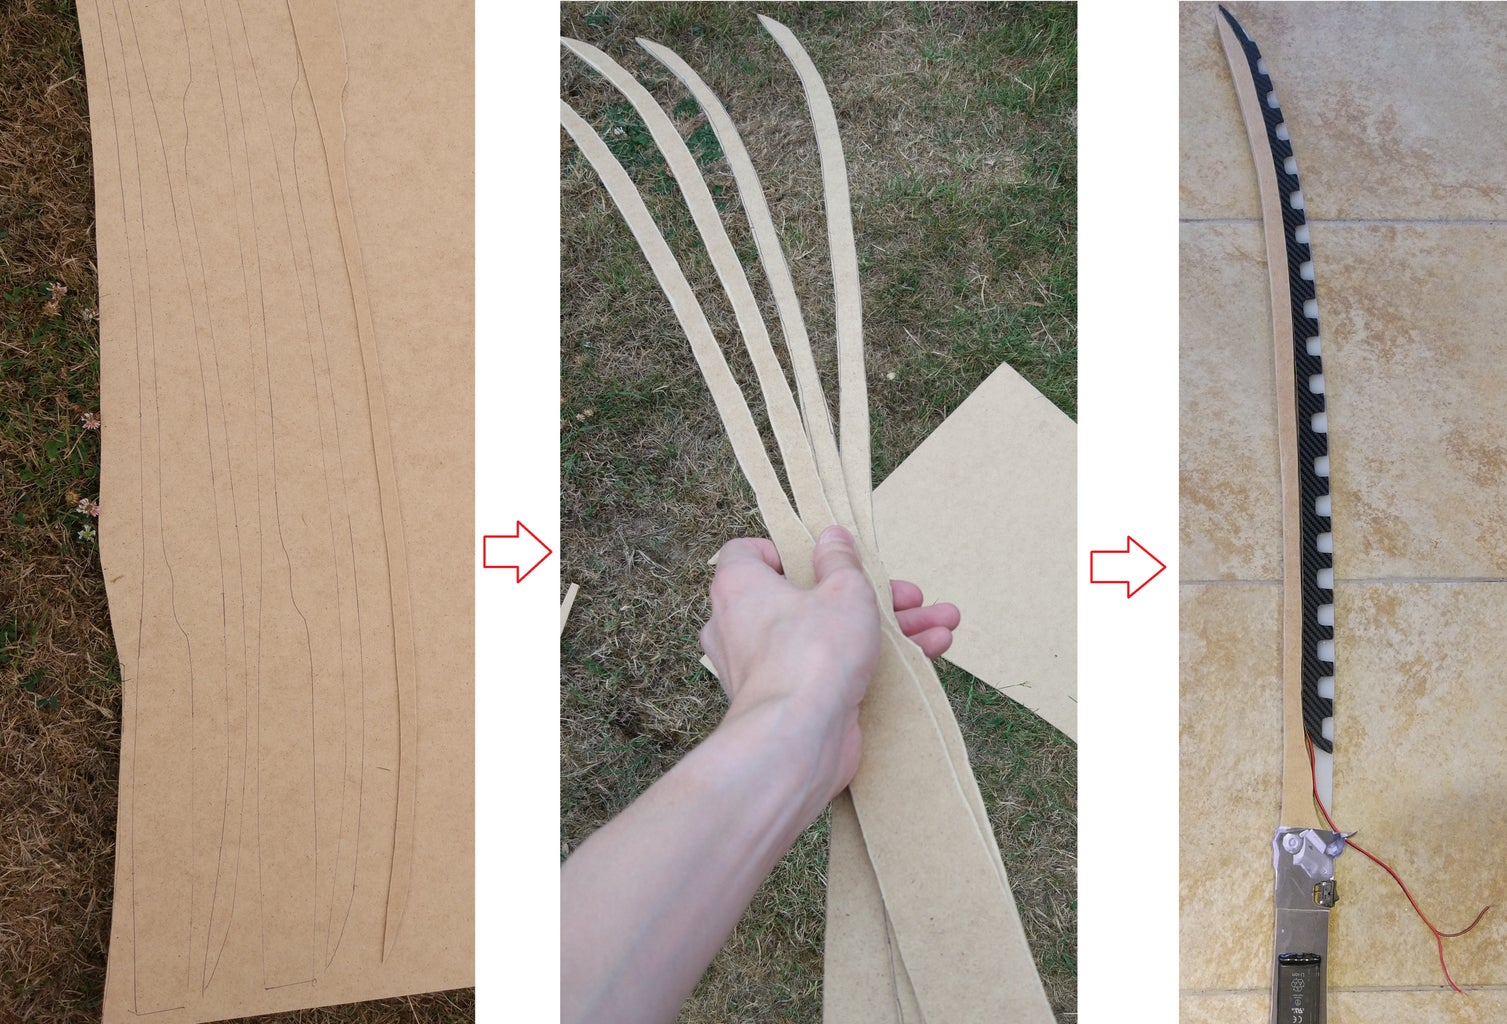 With the Paper Model, Cut 4 Support for the Blade on the MDF and Stick Them Together